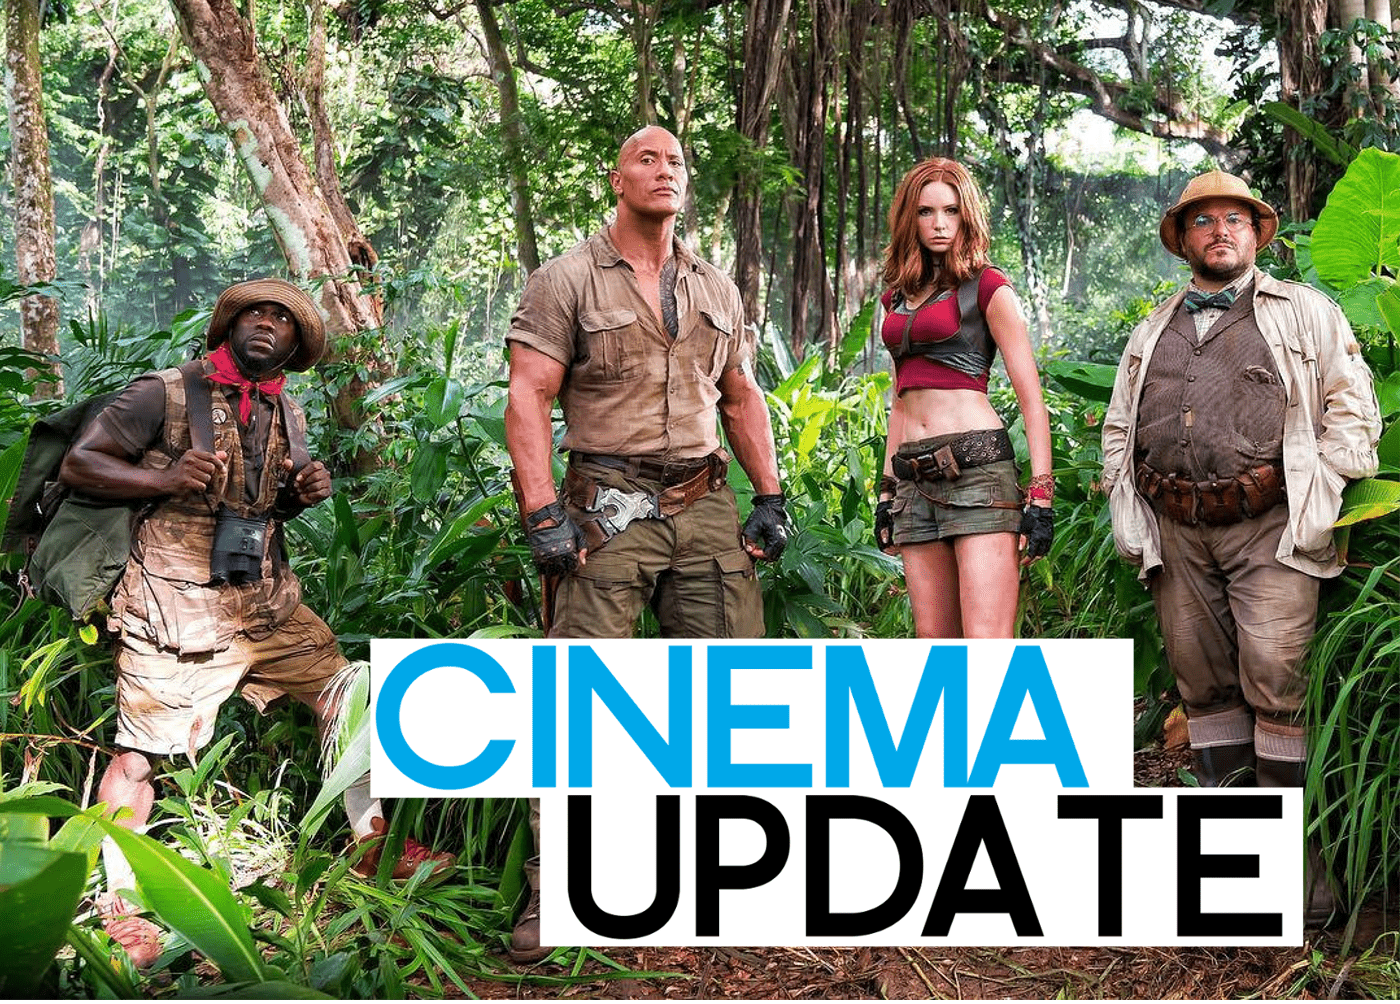 Cinema Update #63 – Toni Erdmann Remake, Ryan Gosling als Willy Wonka, Inhumans & Jumanji